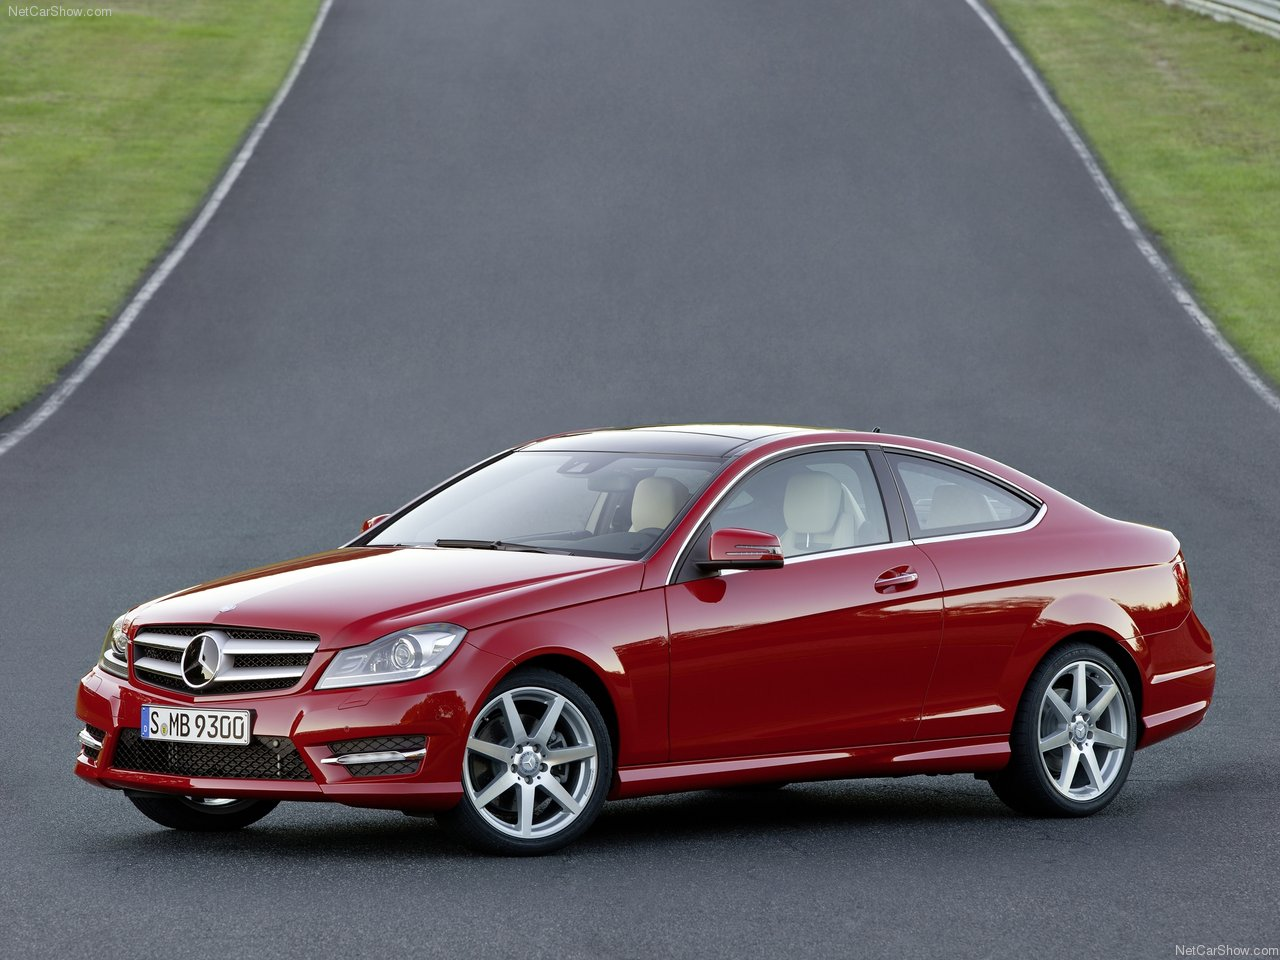 http://1.bp.blogspot.com/-ZGJuQX_x8Vg/TV7_fD1AseI/AAAAAAAABlE/N1afoCkahCs/s1600/Mercedes-Benz-C-Class_Coupe_2012_1280x960_wallpaper_08.jpg